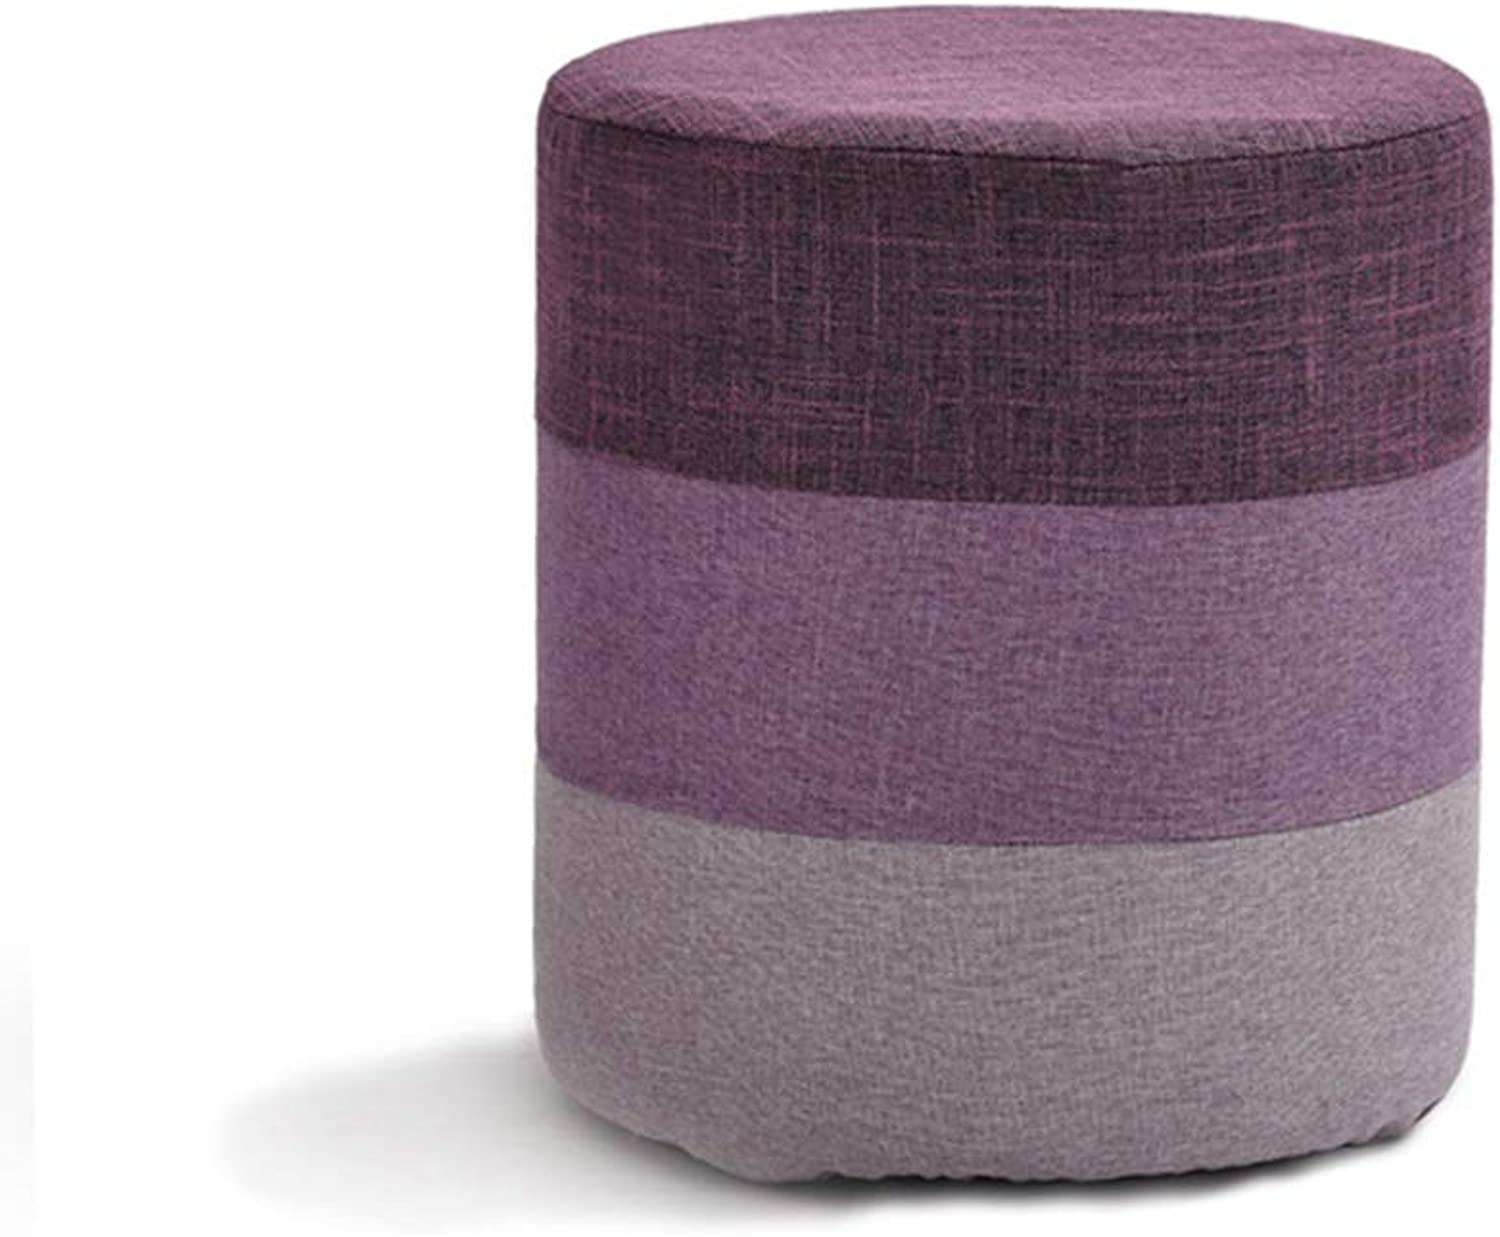 Stool Fabric Creative Stool Home Sofa Stool Adult Door Change shoes Bench Fashion Small Bench ZHANGQIANG (color   Purple, Size   Cylindrical)